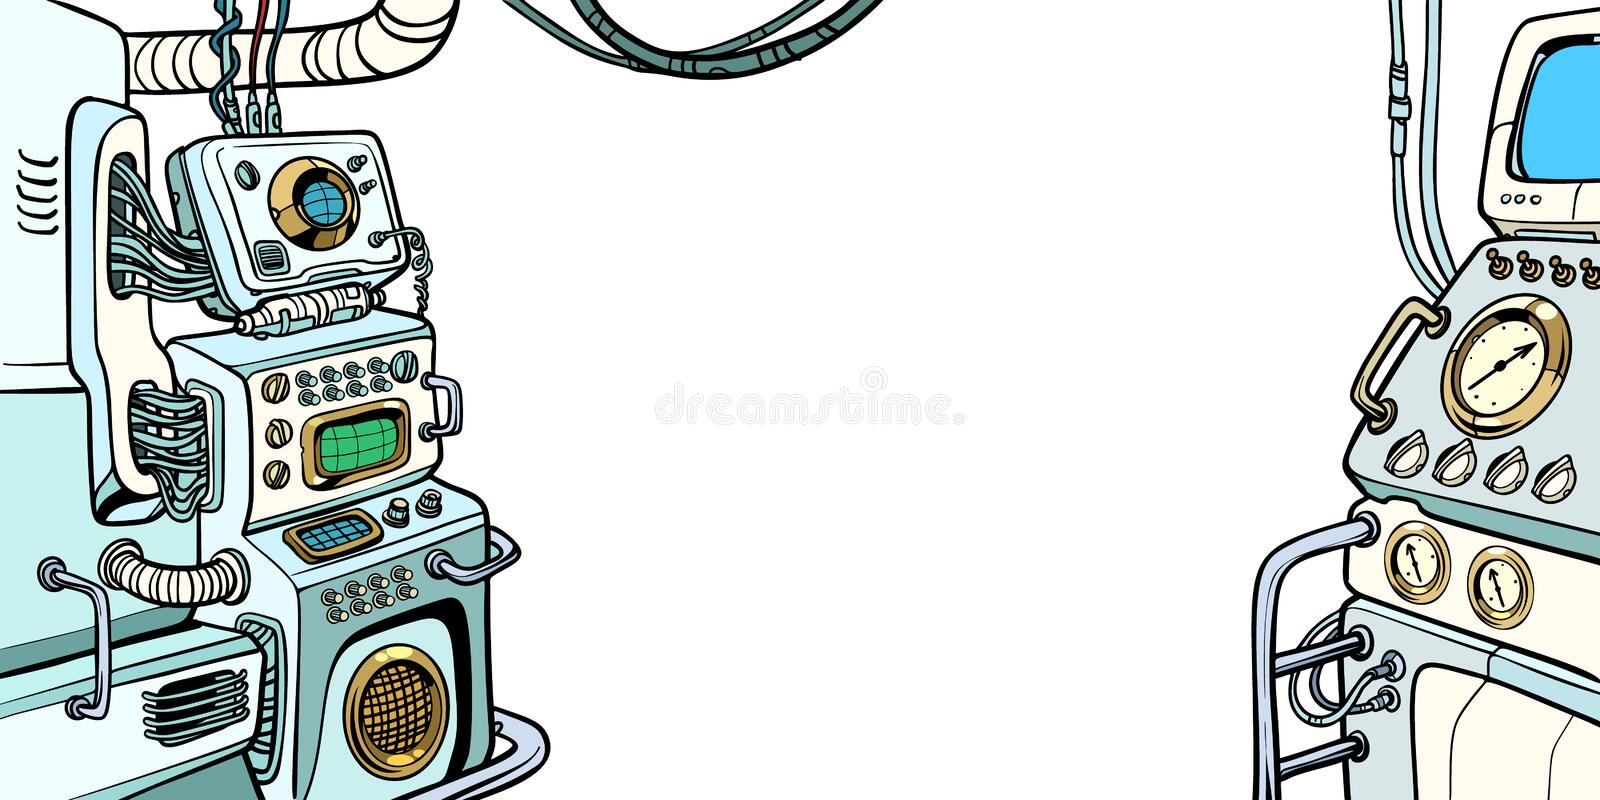 Details of the spacecraft royalty free illustration